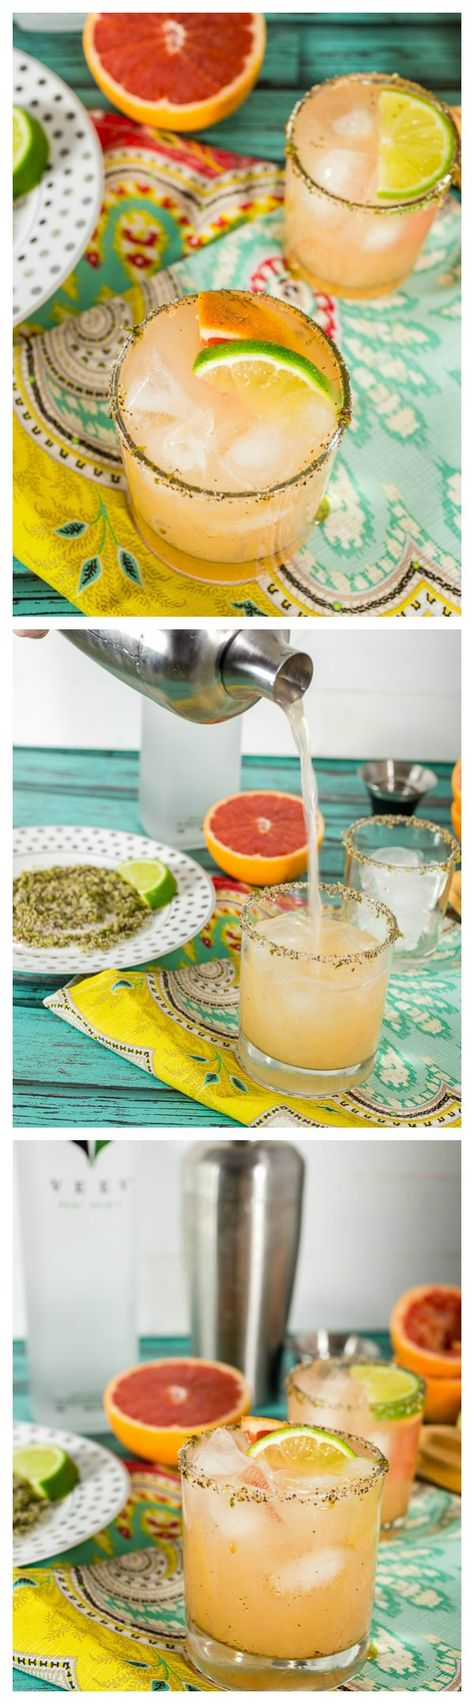 Grapefruit Margarita with Chili Lime Rim from The Girl In The Little Red Kitchen